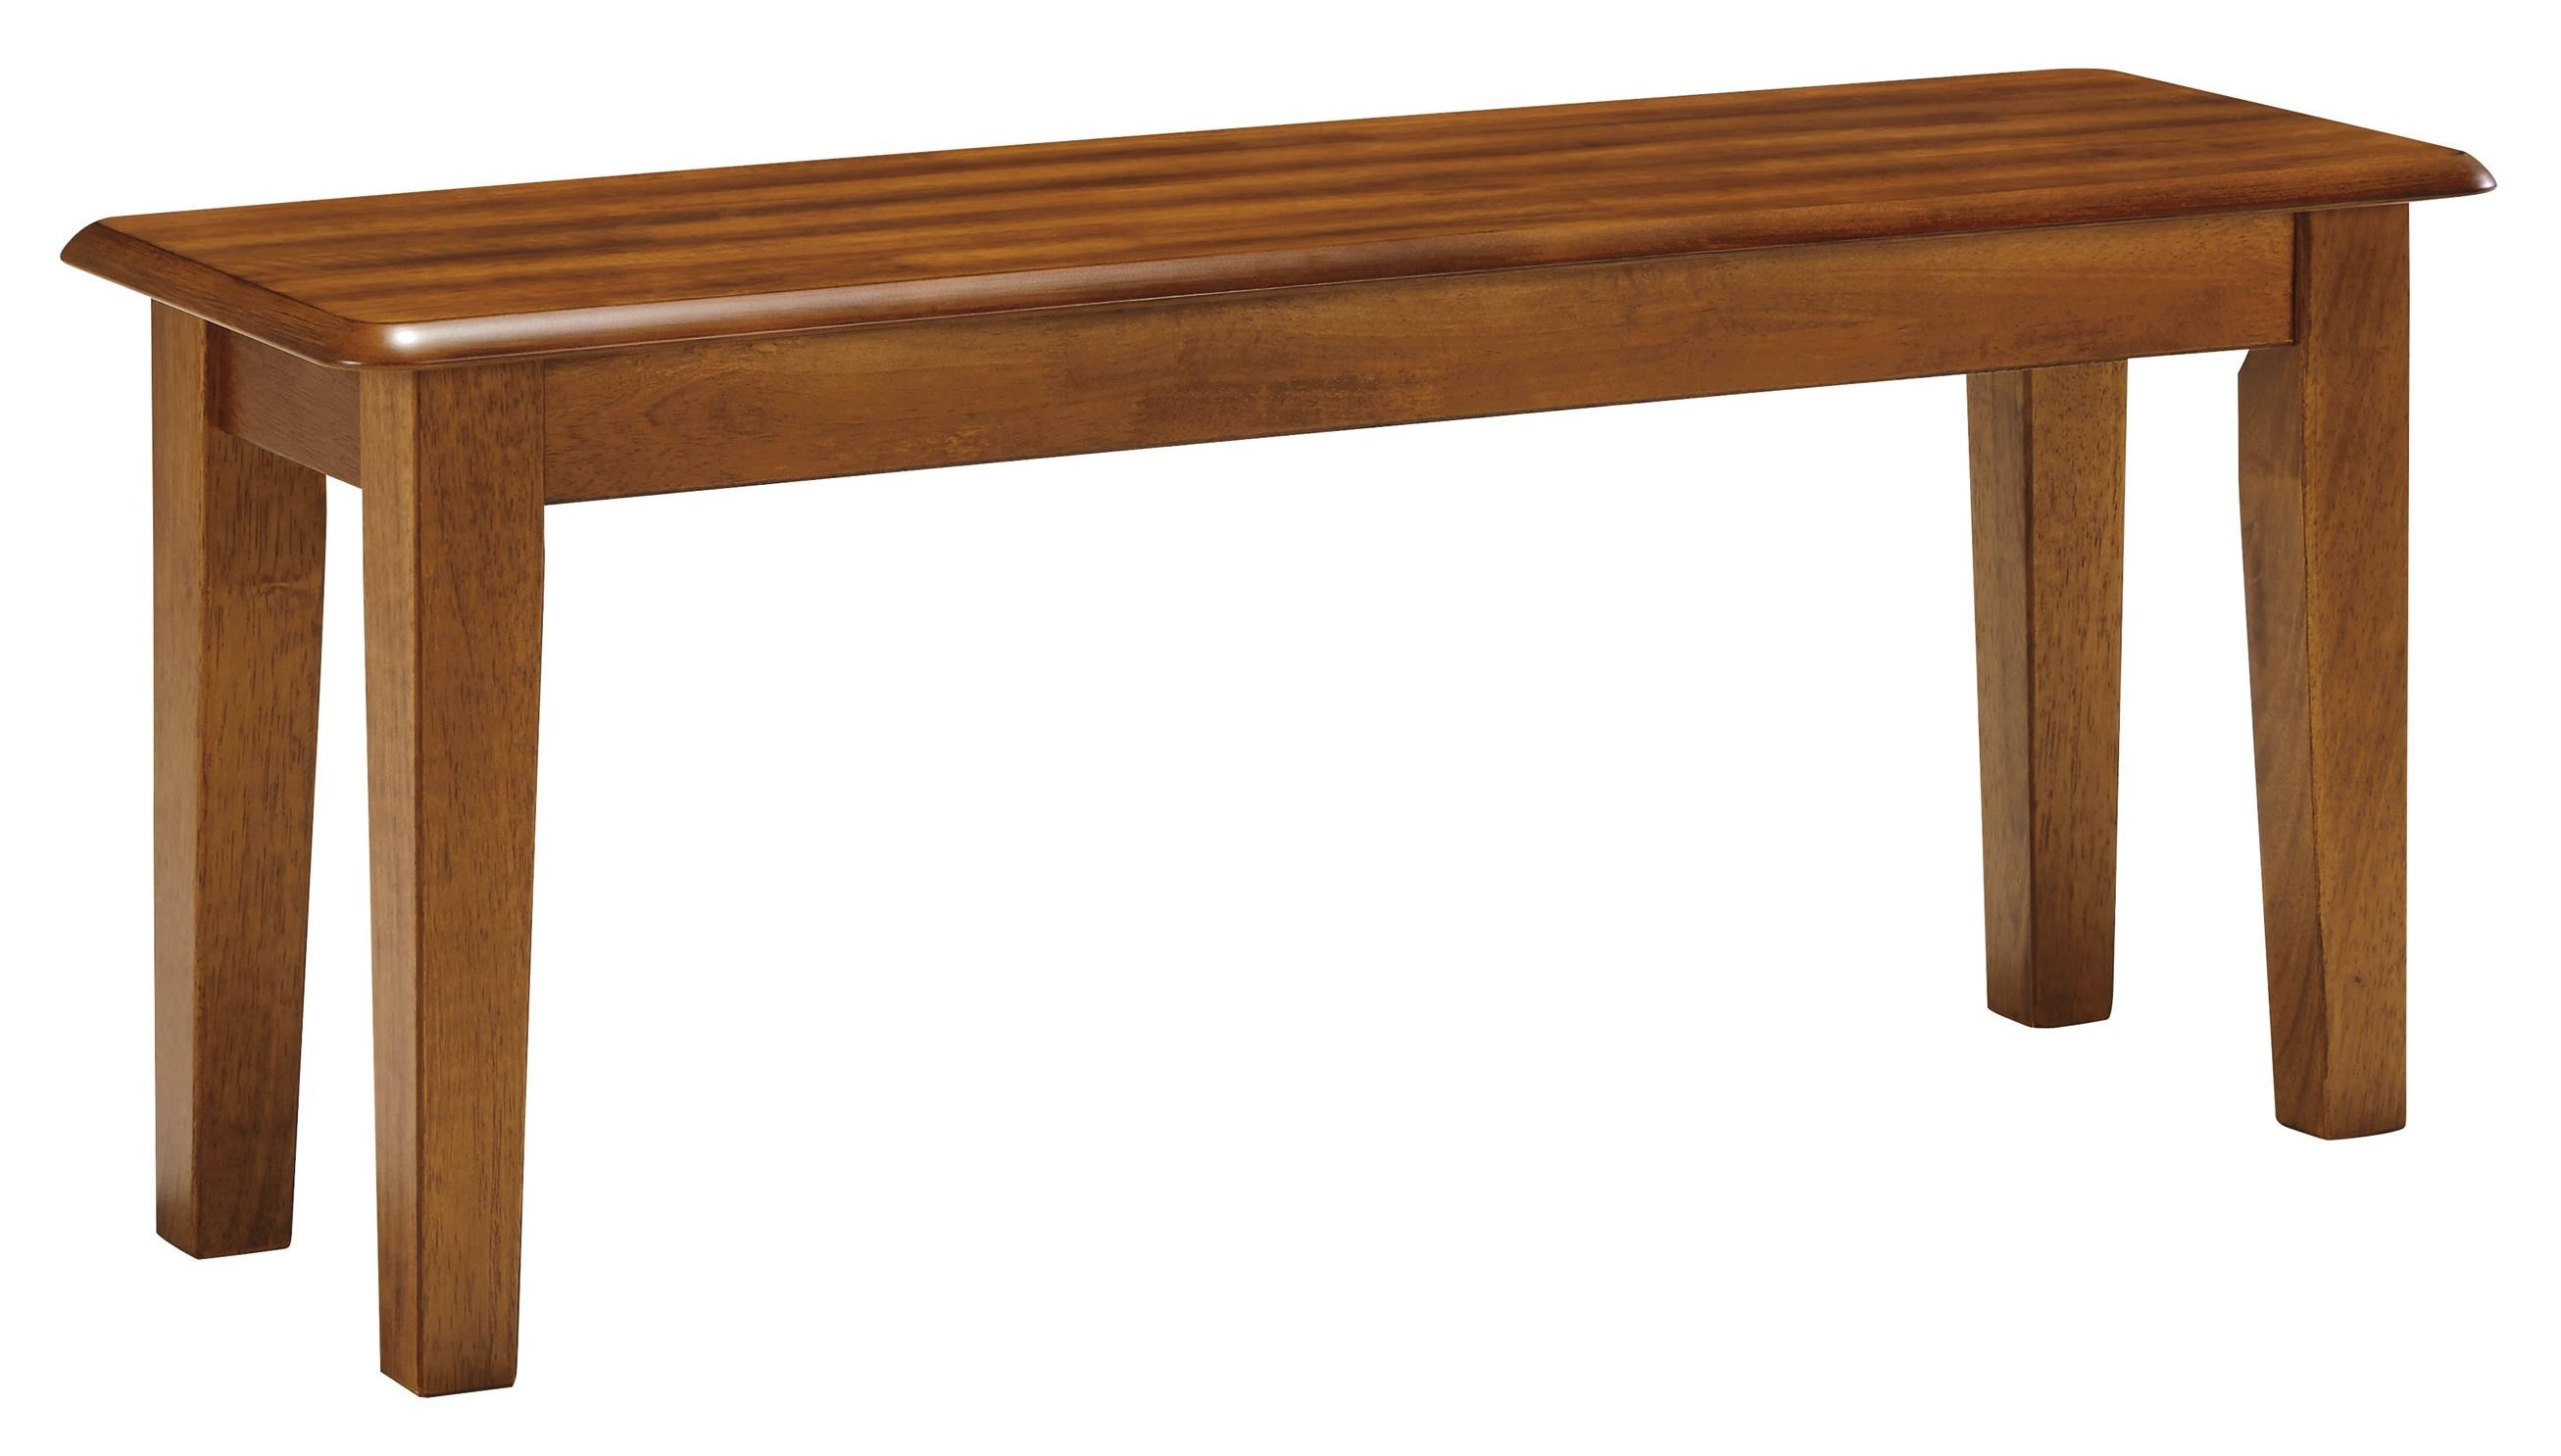 Merveilleux Ashley Furniture Berringer Hickory Stained Bench | Bullard Furniture |  Dining Benches Fayetteville, NC